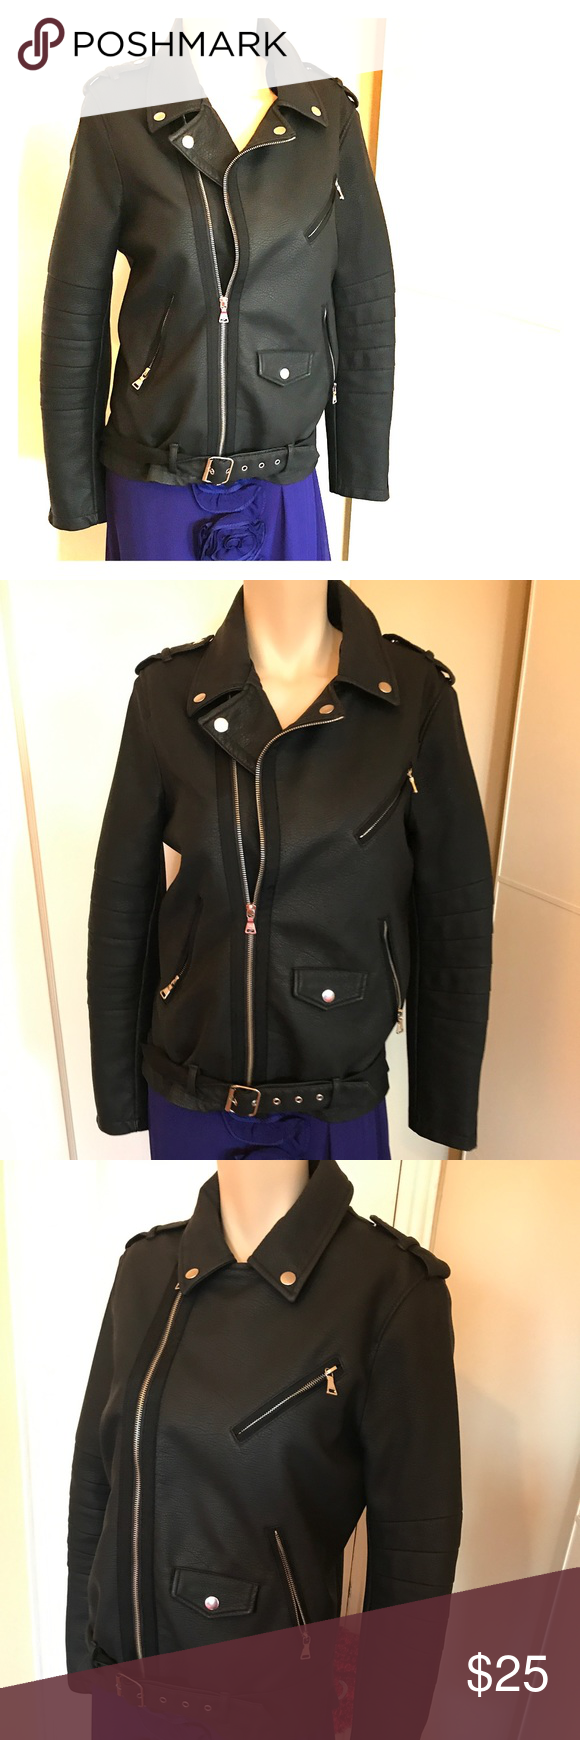 EXPRESS Black Motor Jacket Size M EXPRESS Motor Jacket